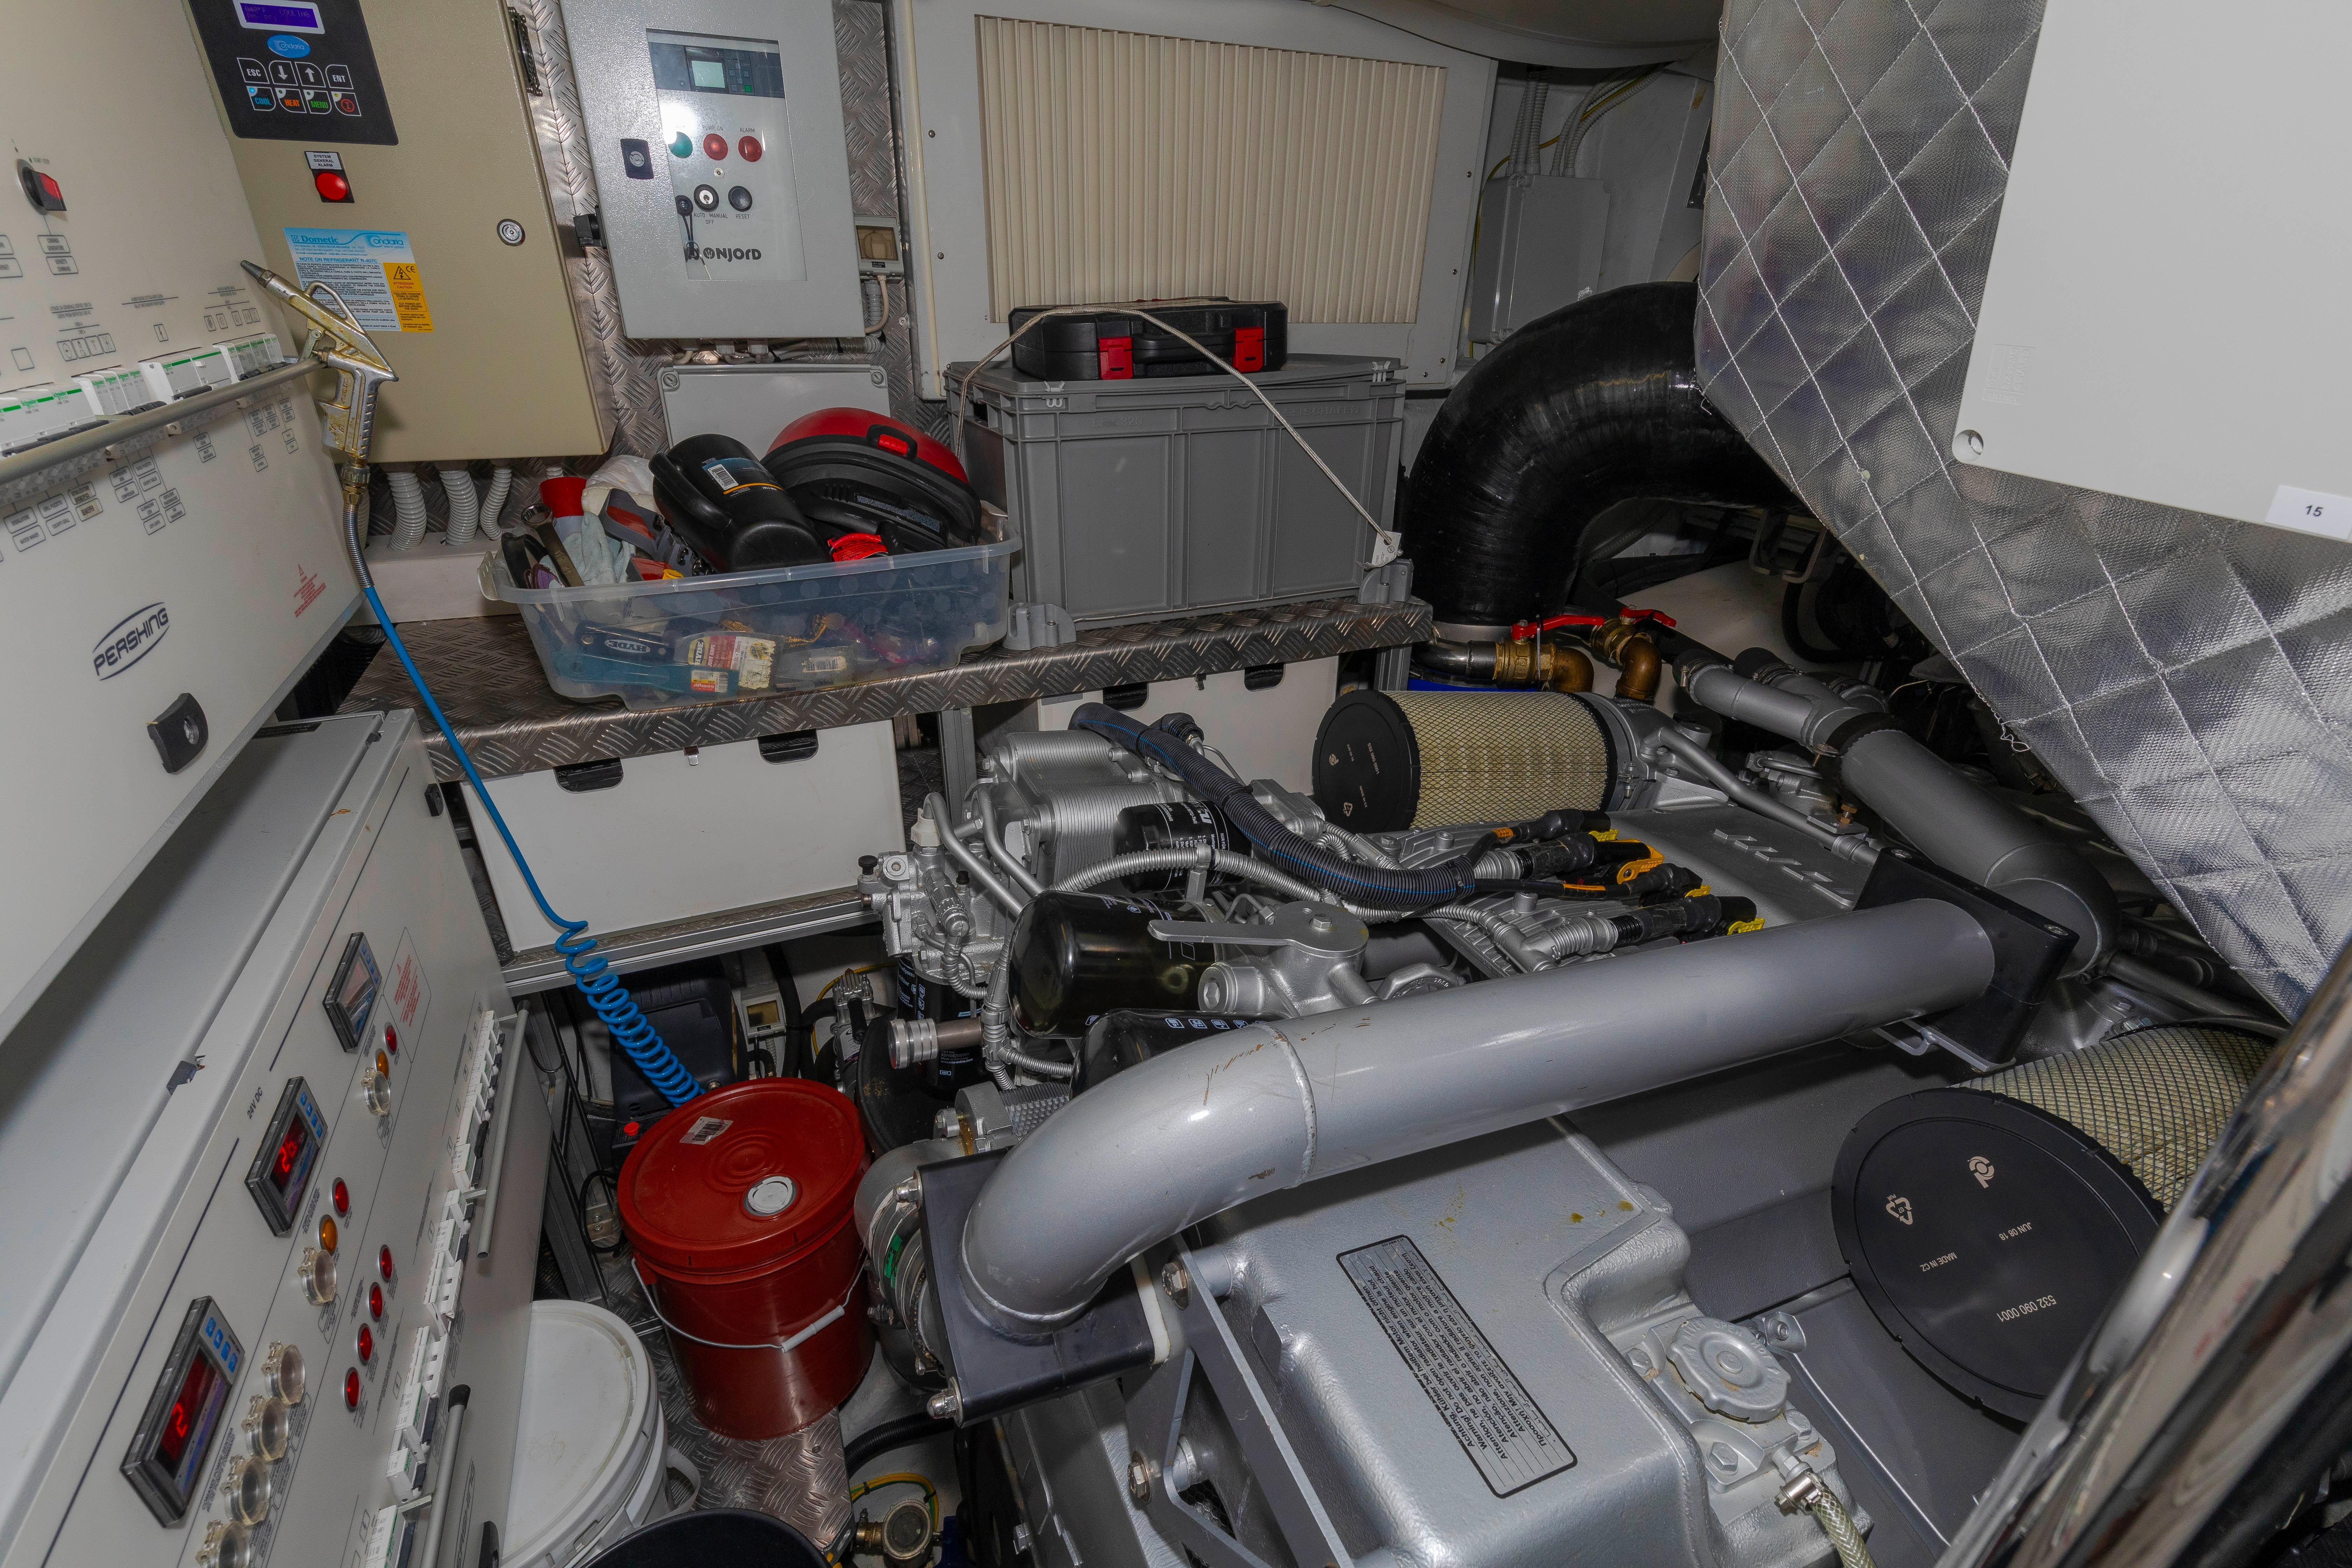 2016 Pershing 70 - Engine Room